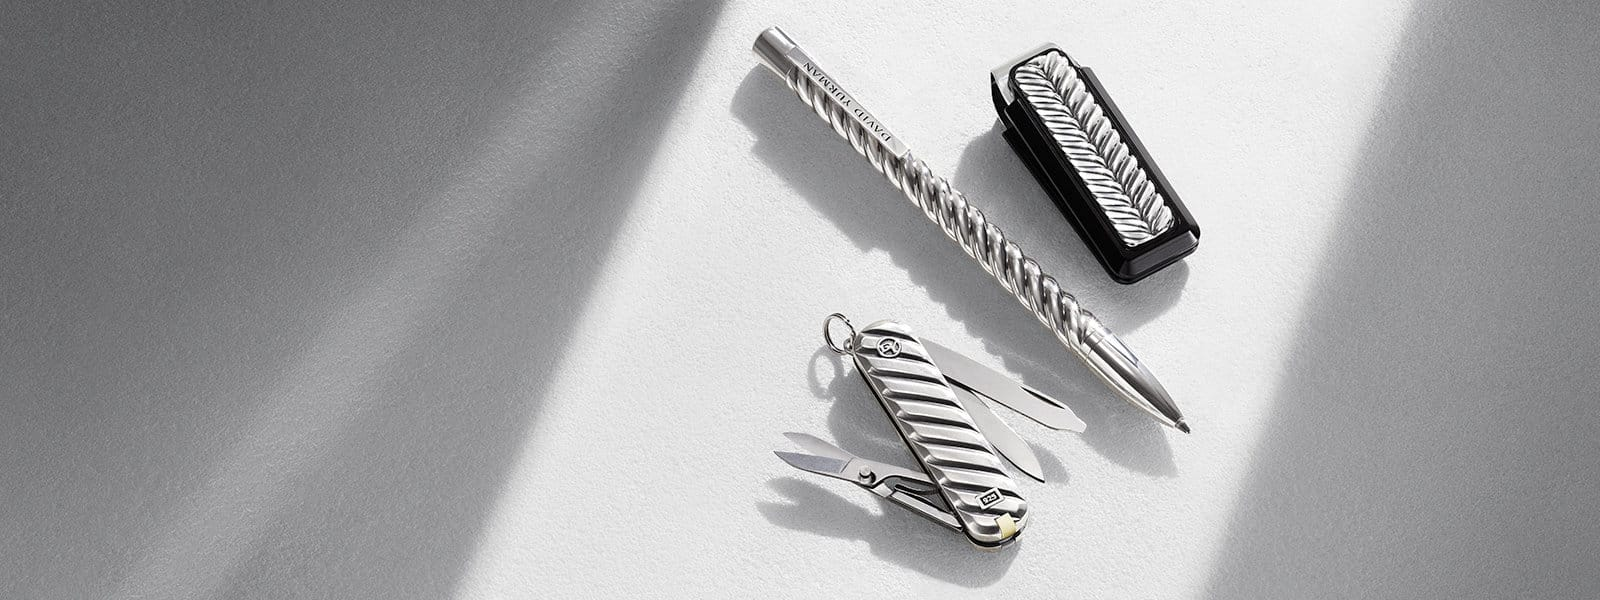 Modern Cable Swiss Army knife in sterling silver, Cable pen in silver and gold-plated brass and Chevron money clip in sterling silver and black aluminum, in a ray of light on a textured white stone.